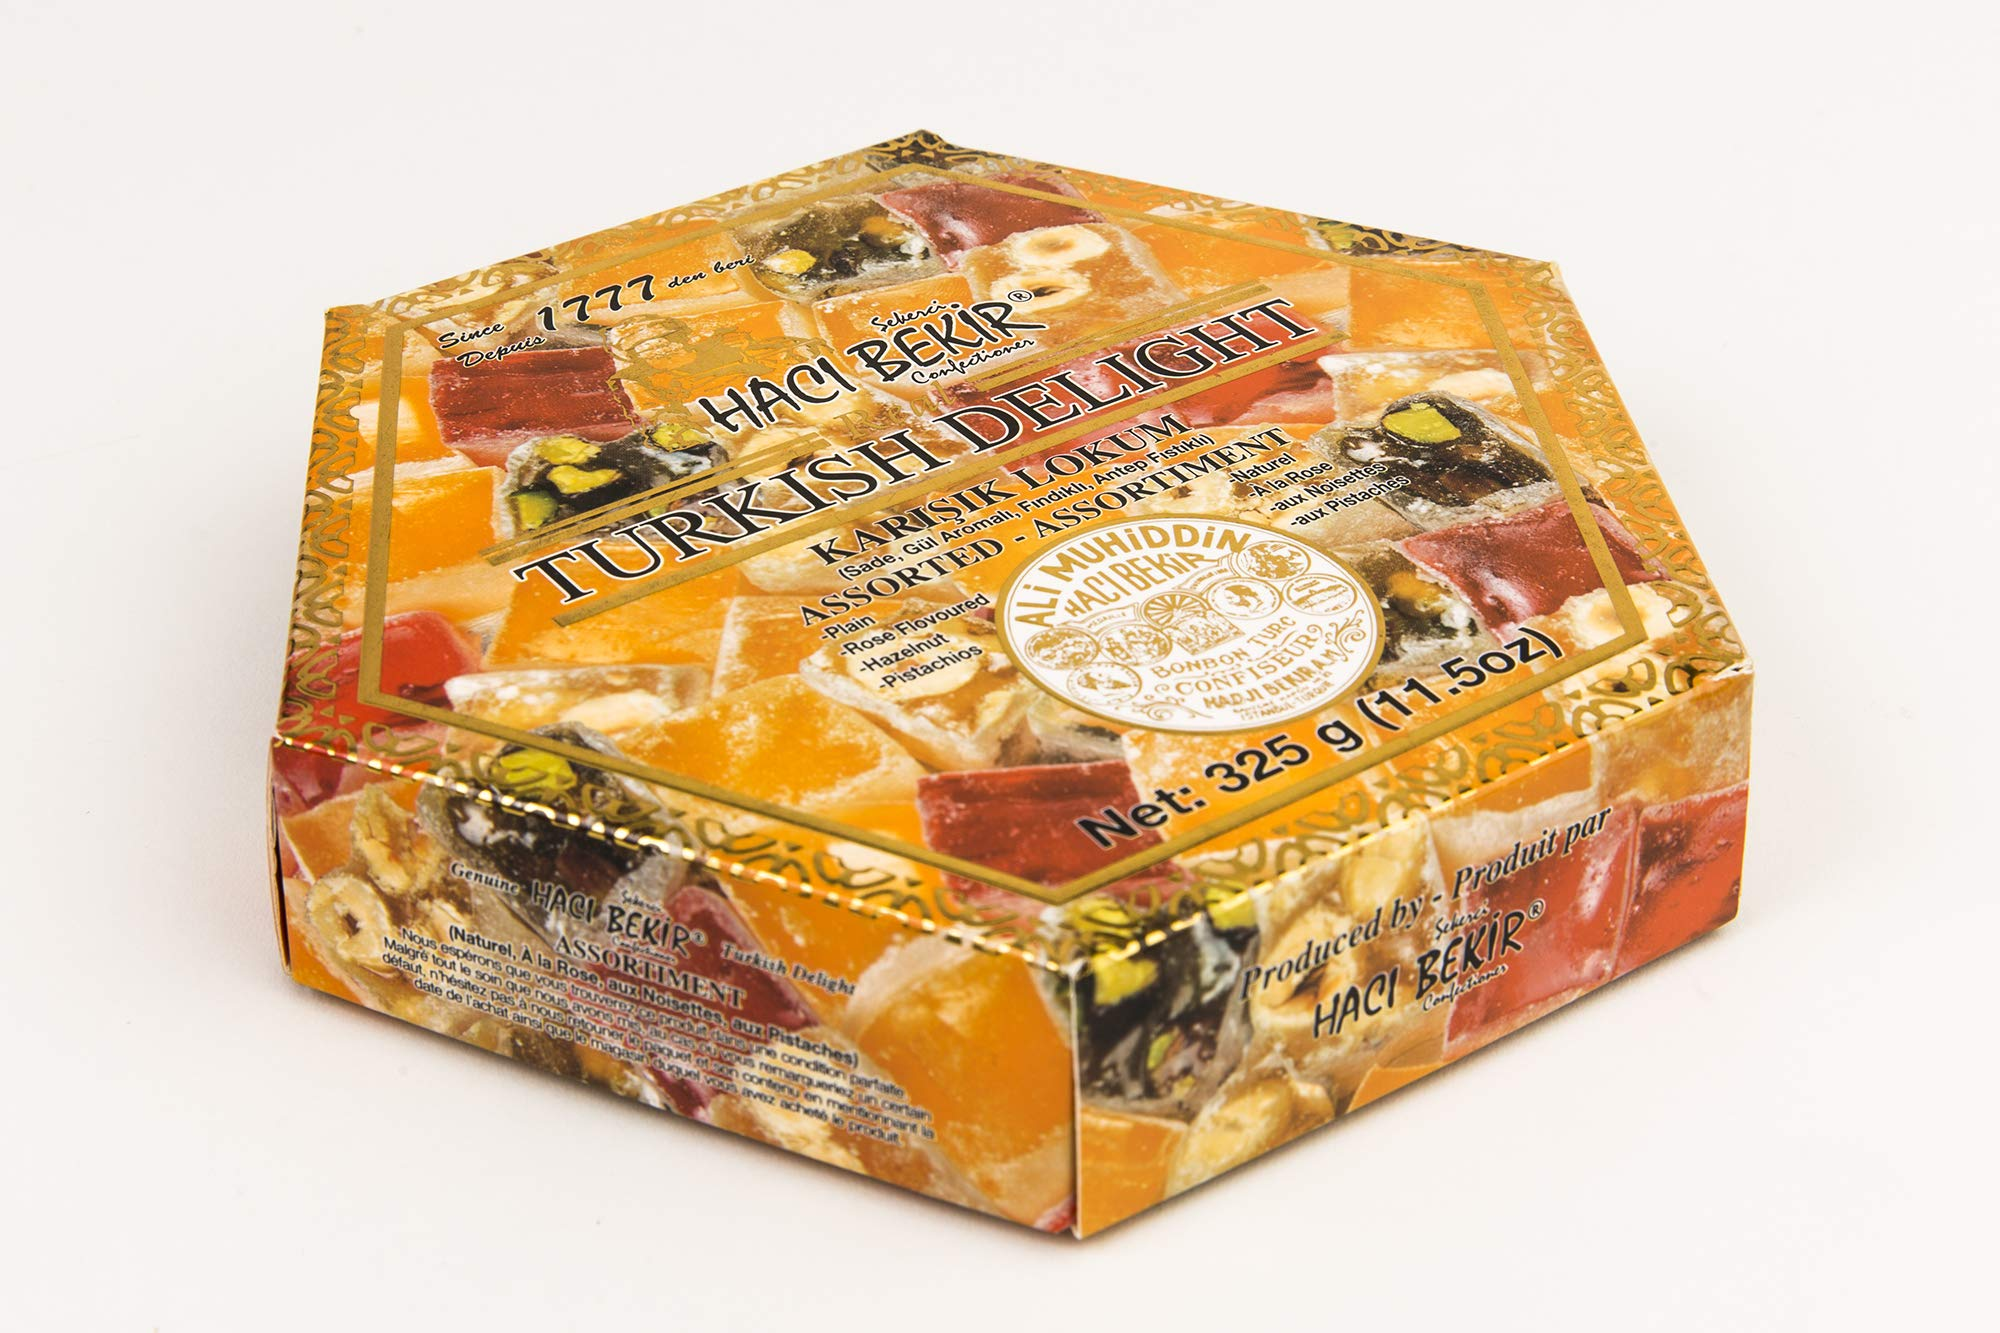 Haci Bekir Lokum Turkish Delight Mix Assorted (Plain, Rose, Hazelnut, Pistachio) 325 gr by HACI BEKIR